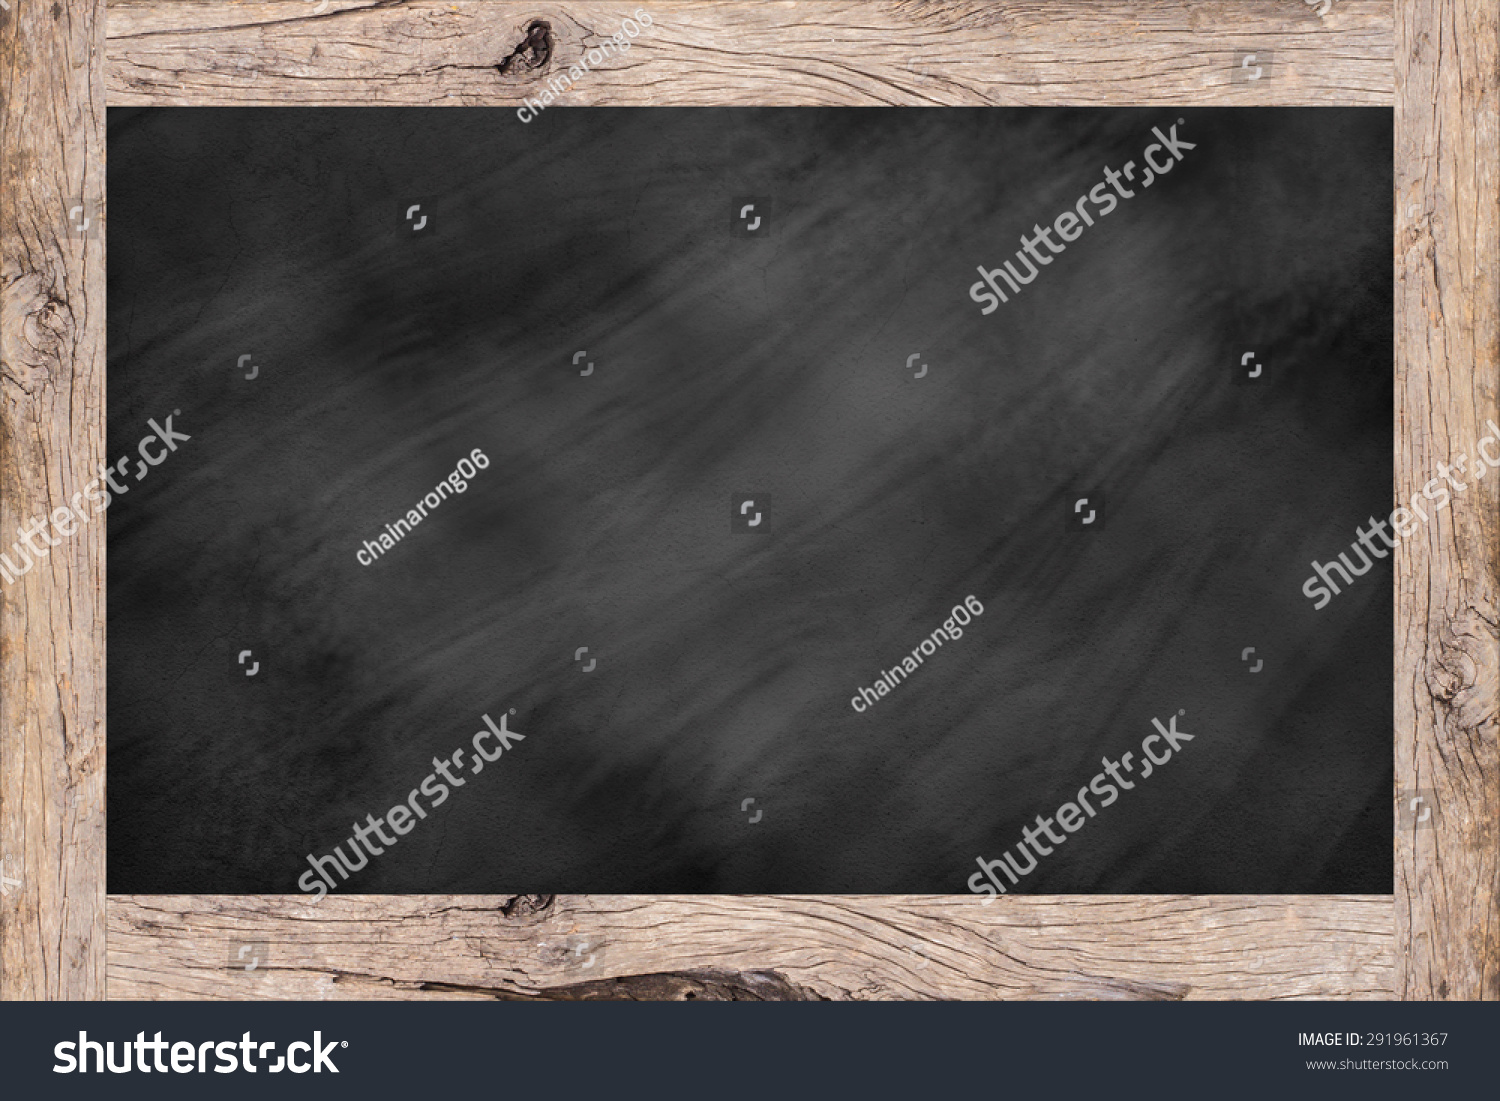 ... background textures with old vintage wooden frame ,blackboard concept